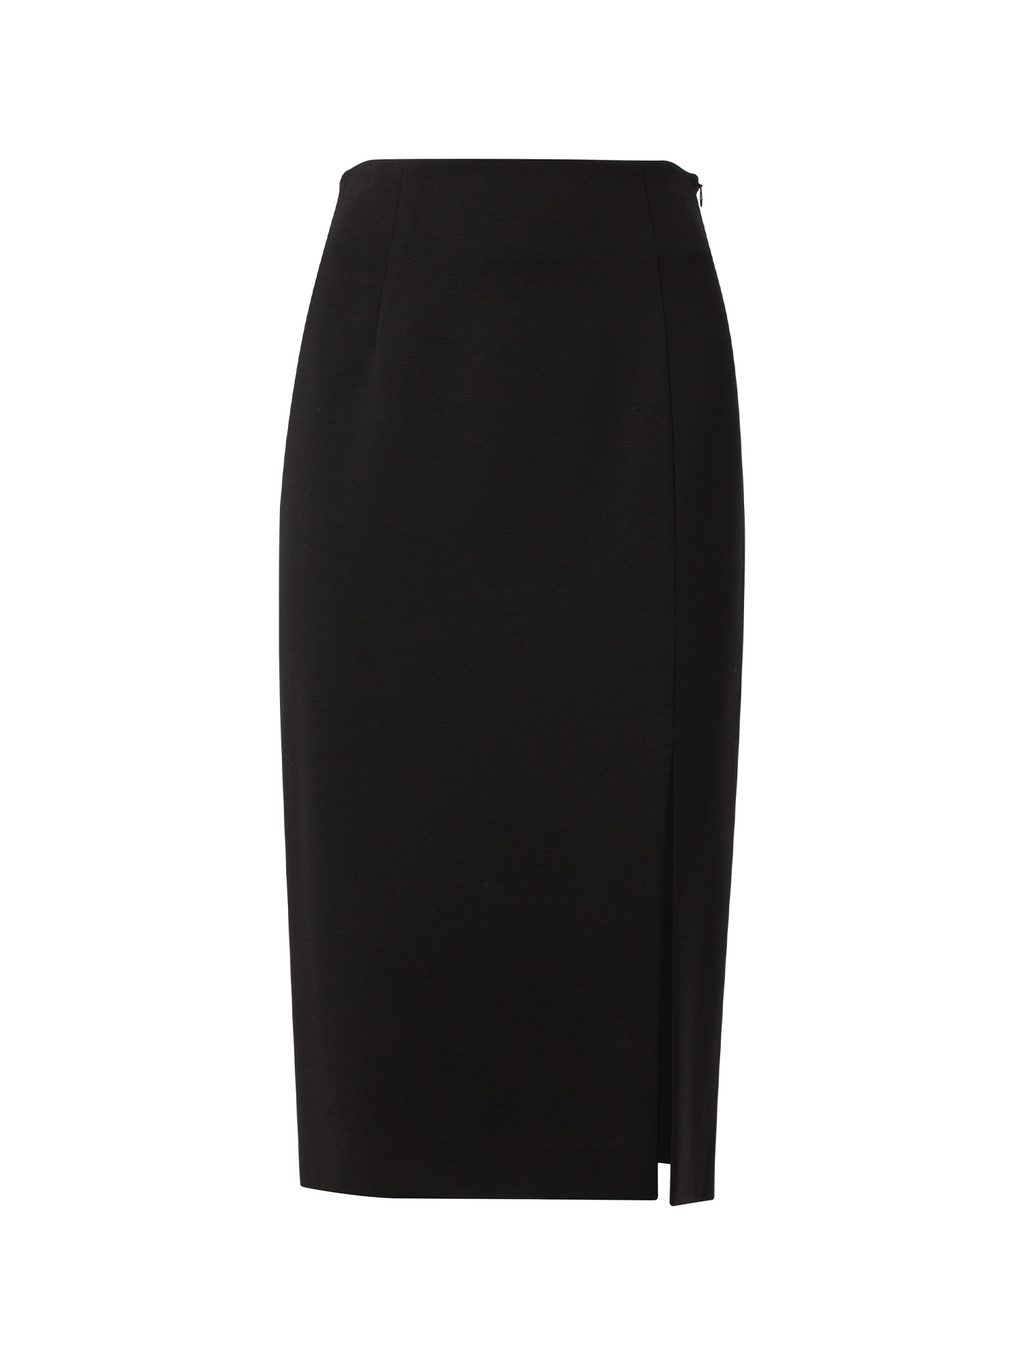 Dorothee Schumacher Emotional Essence Skirt